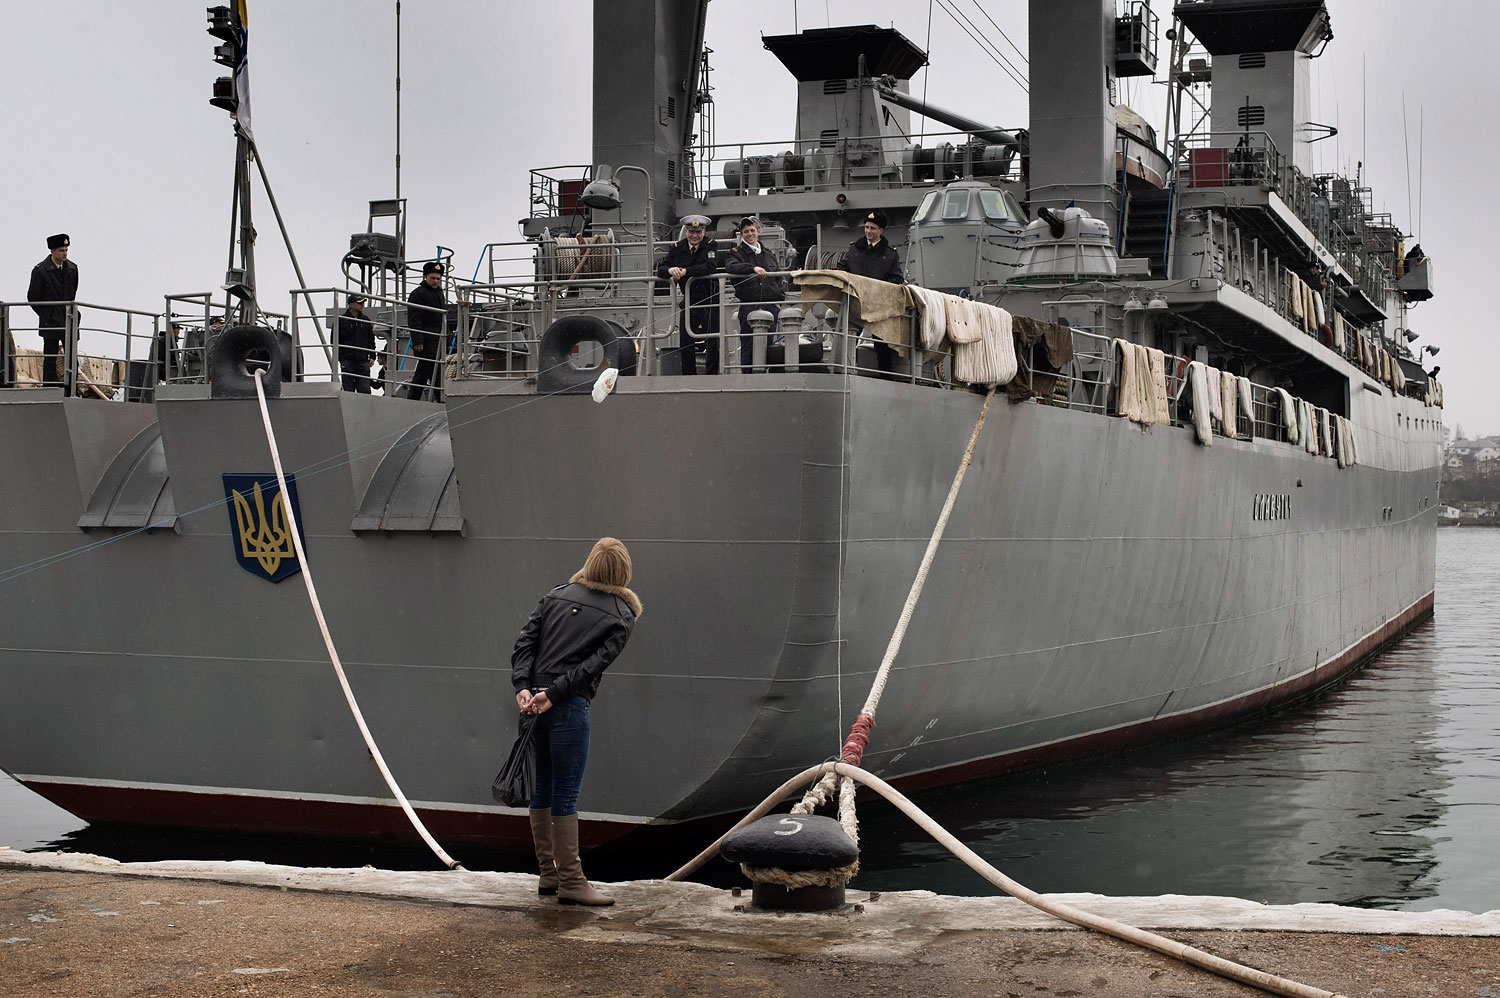 Ukrainian sailors, on a ship blocked by Russian forces, spoke to their relatives at the port of Sevastopol, March 4, 2014.